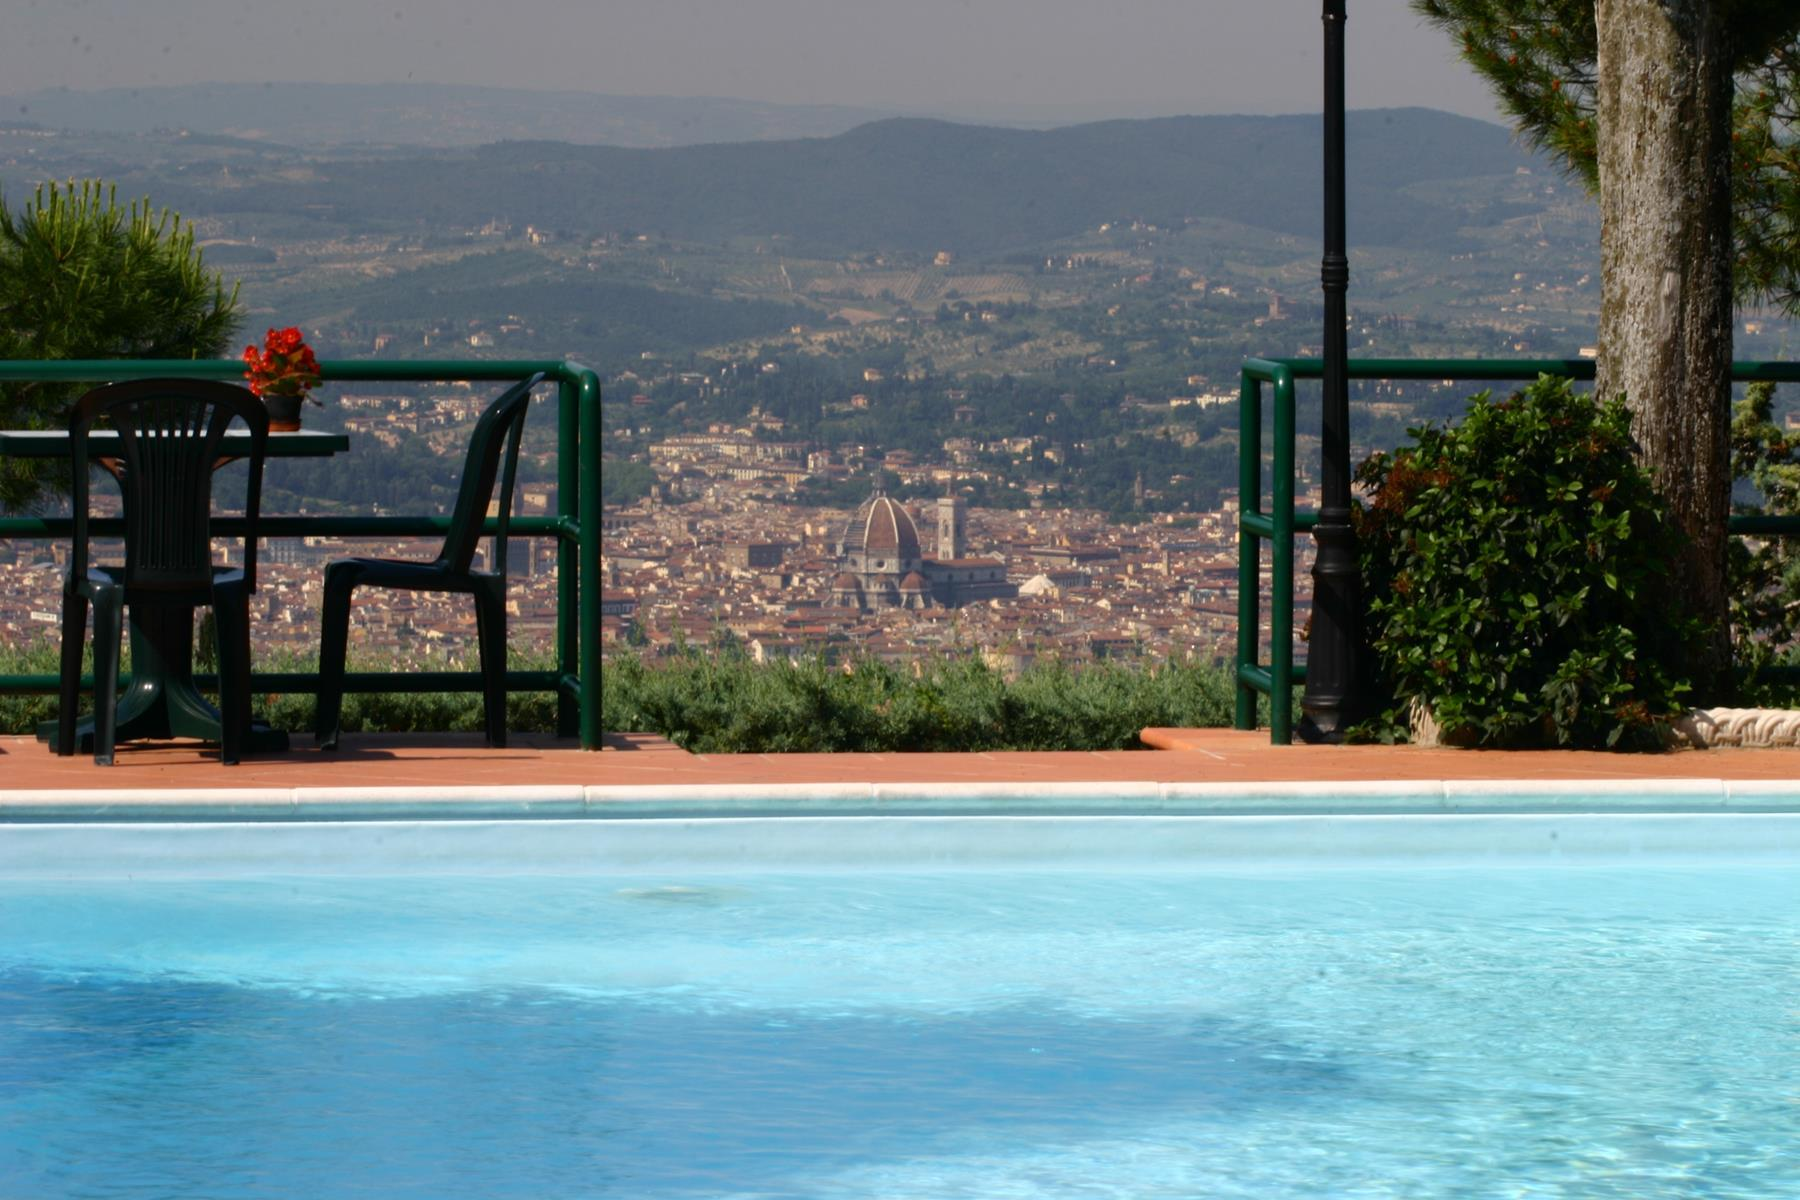 Mare, piscina Camping Village  Panoramico Fiesole - Fiesole